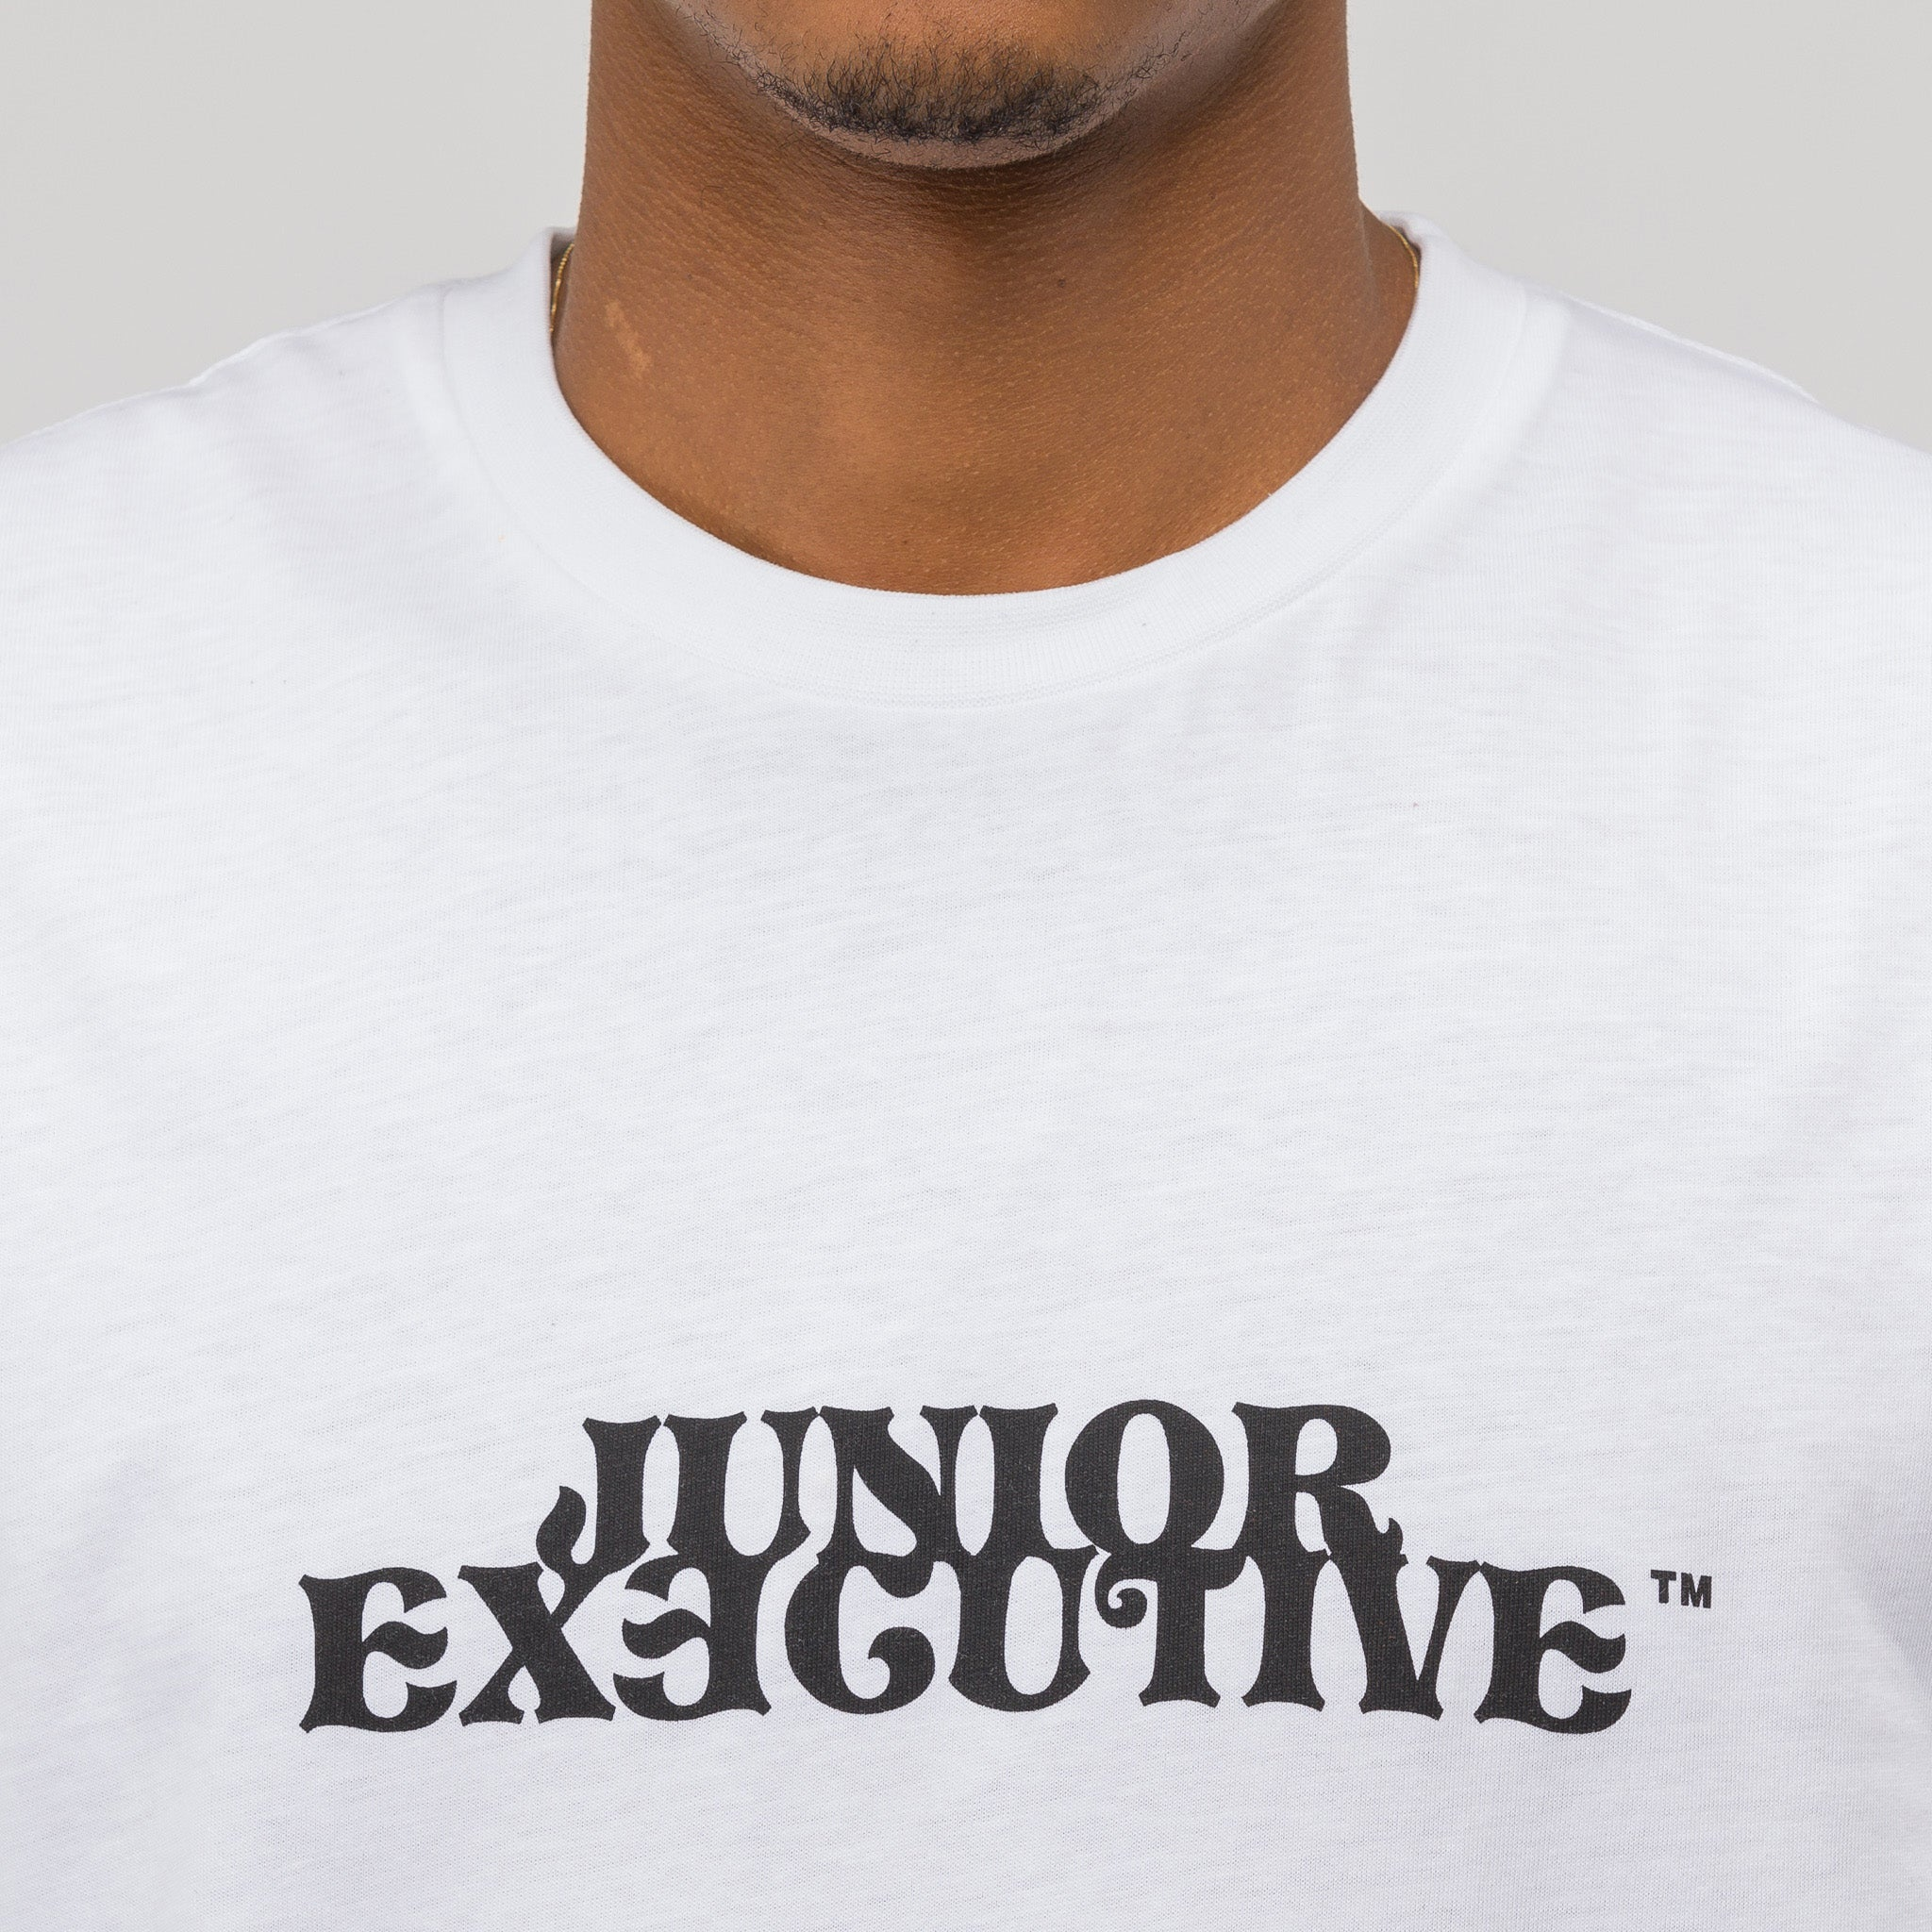 Souvenir Junior Executive Monkey T-Shirt in White